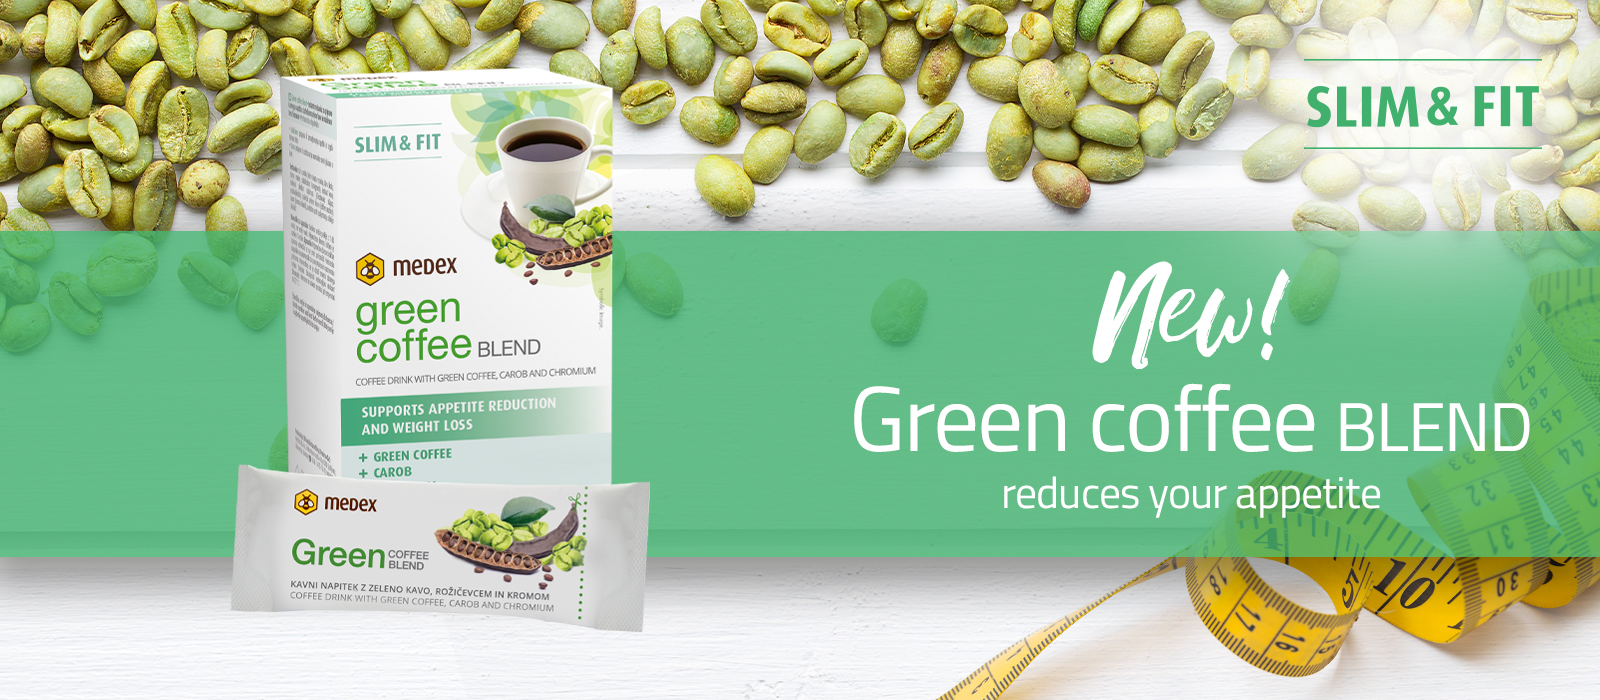 NEW Green Coffee Blend